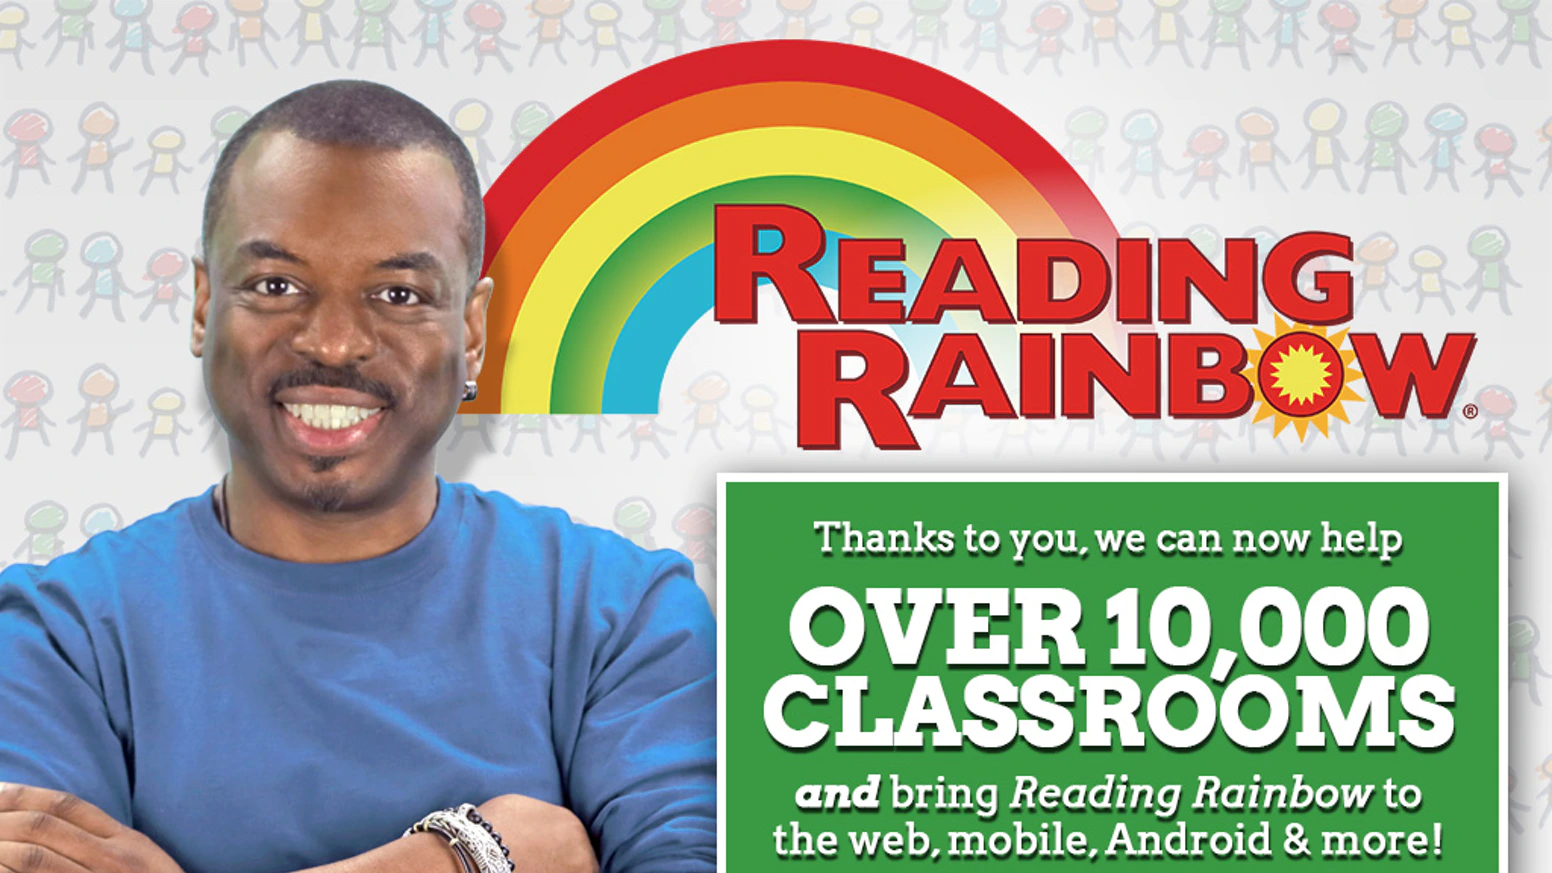 Bring Reading Rainbow Back is one of the most successful kickstarter campaigns